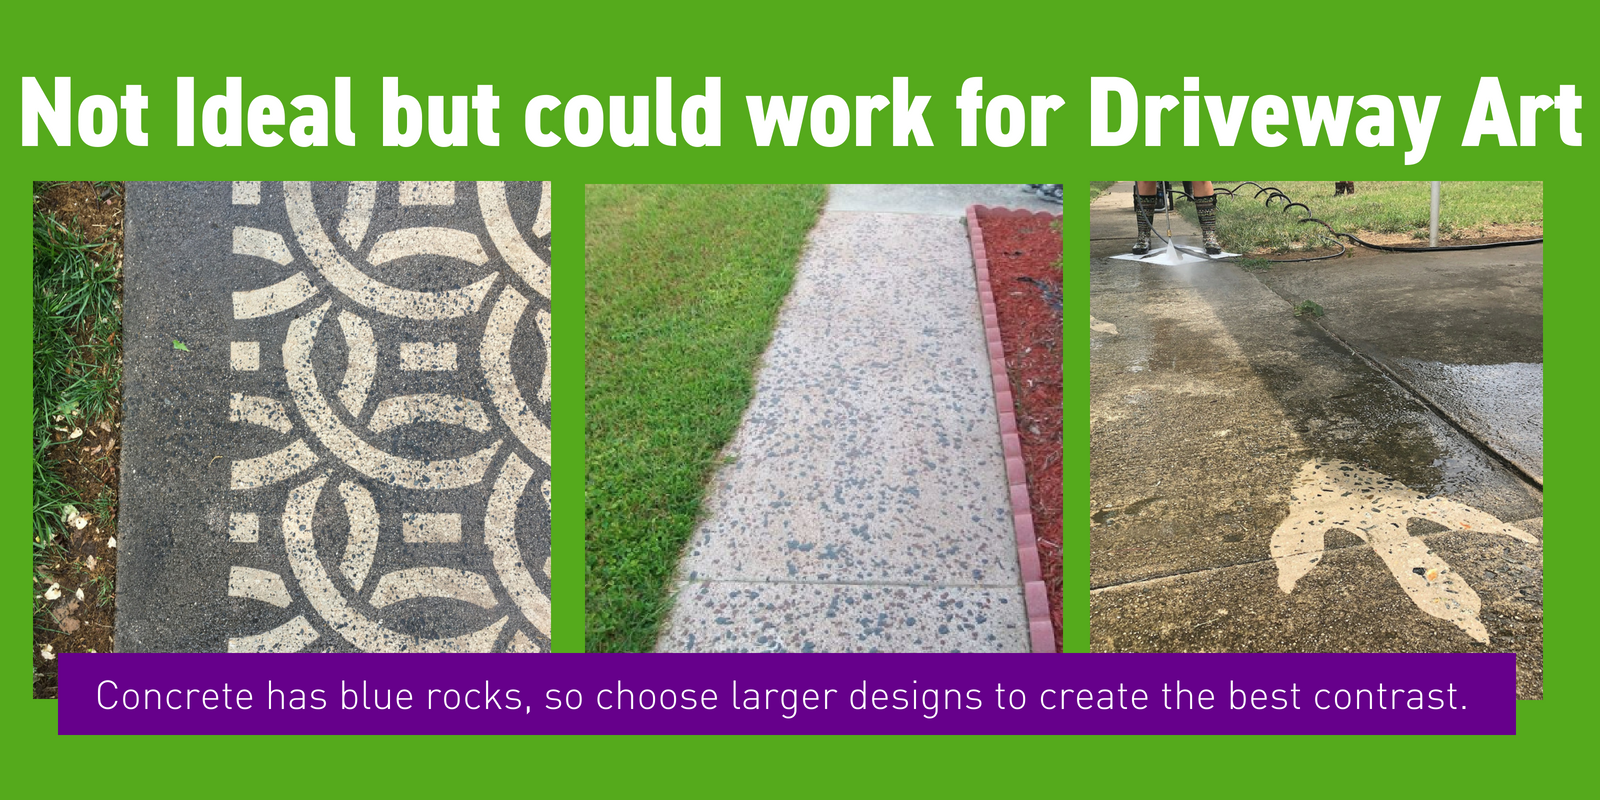 Examples of concrete that are not ideal but could work for Driveway Art